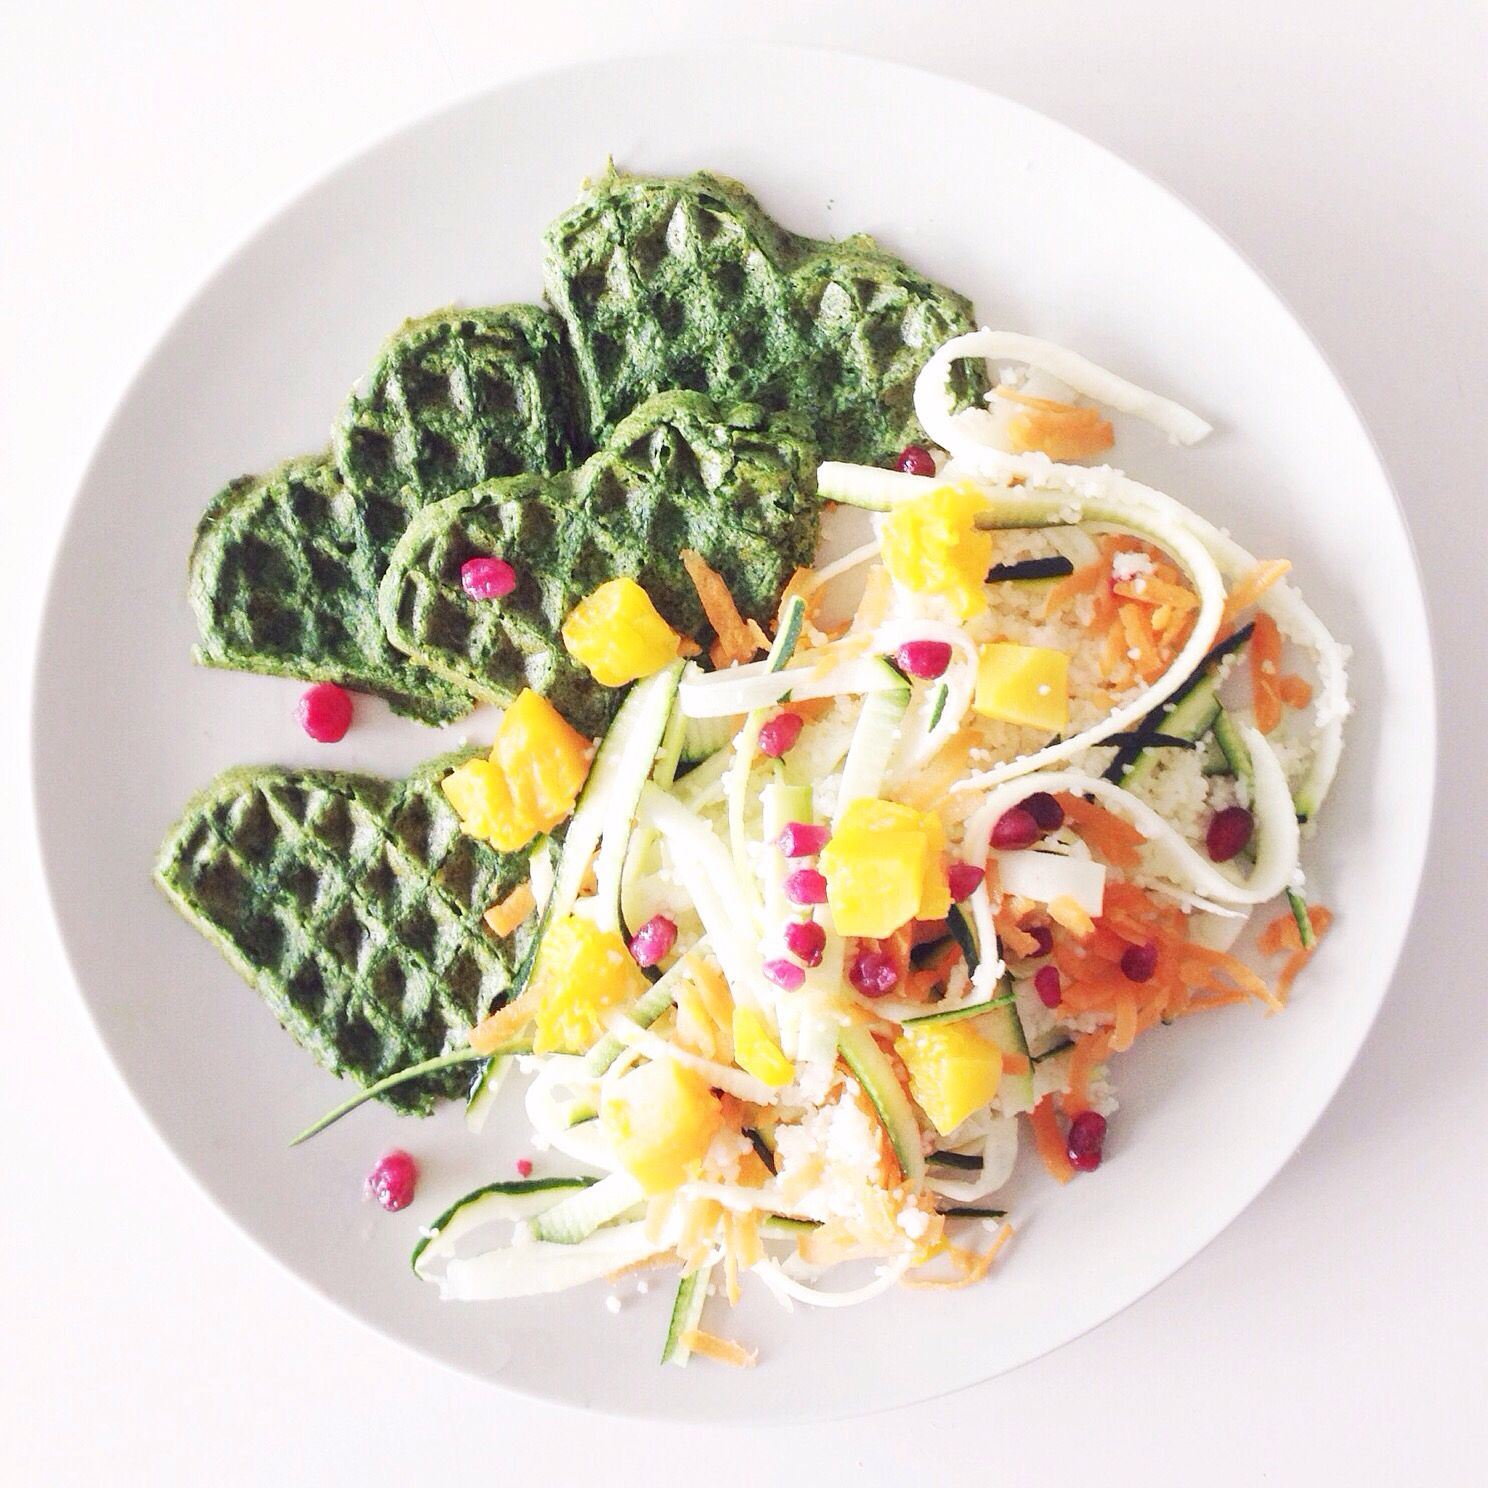 Party on a plate by Studio Cookart: spinach pancakes and zucchinipasta.